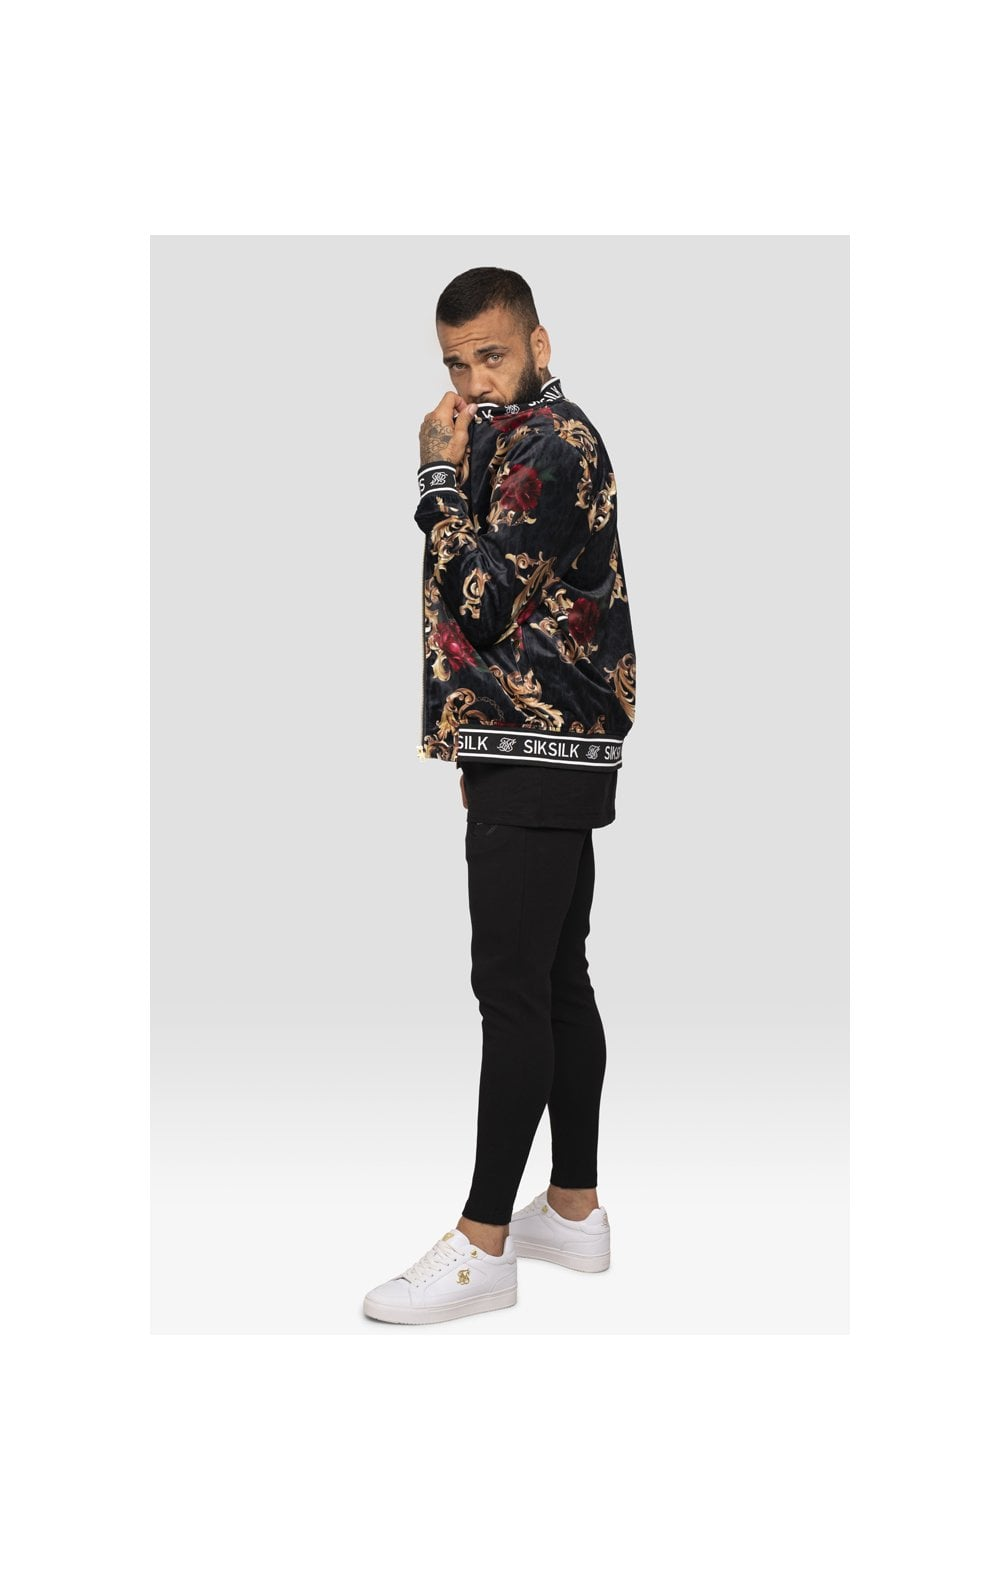 SikSilk x Dani Alves Velour Bomber Jacket - Floral Animal (6)